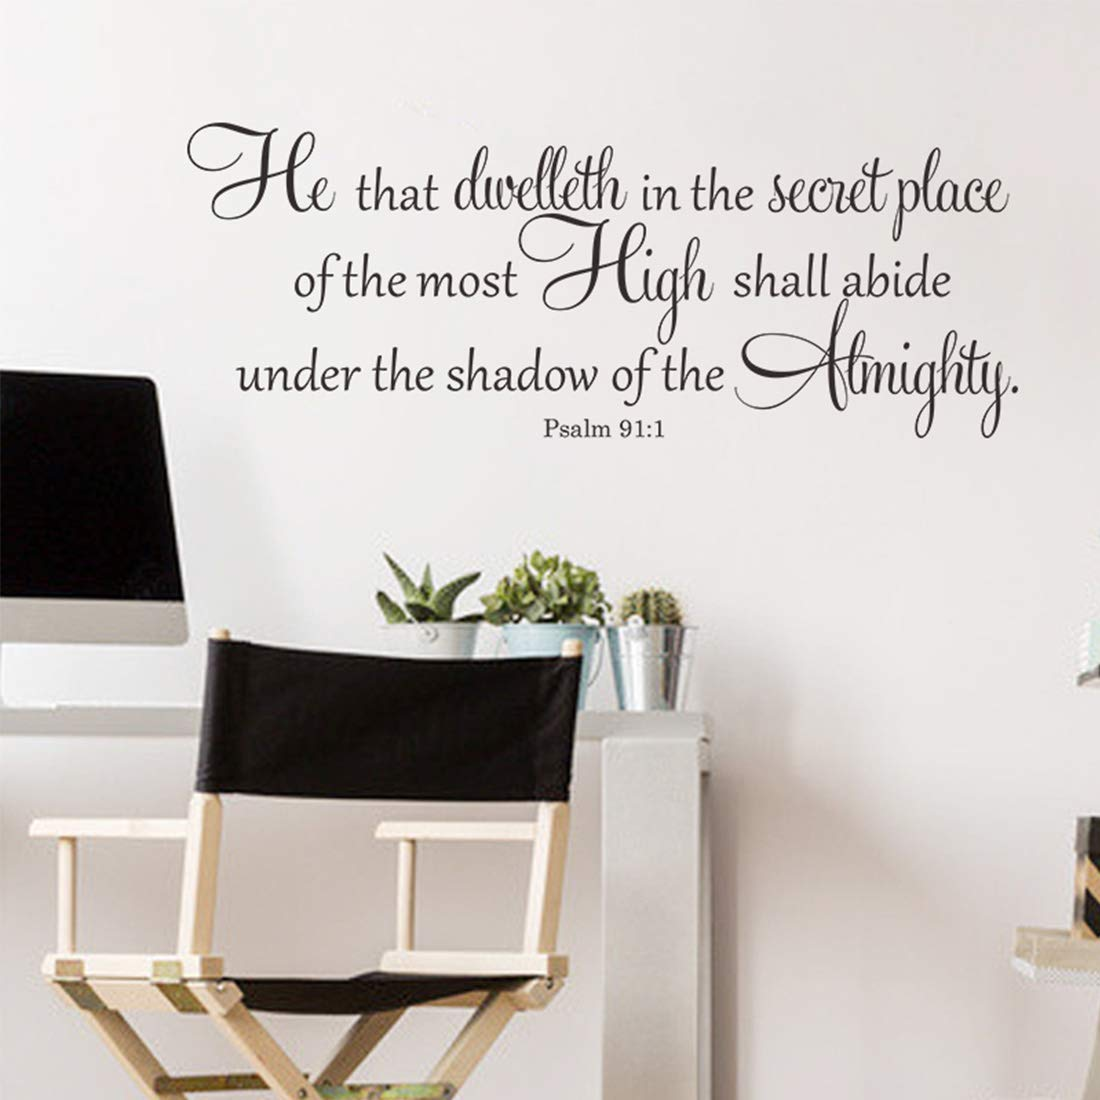 Bible Verse Scripture Inspirational Wall Decor Quotes for Living Room – He That Dwelleth in The Secret Place – Wall Decor for Bedroom Classroom Playroom Nursery